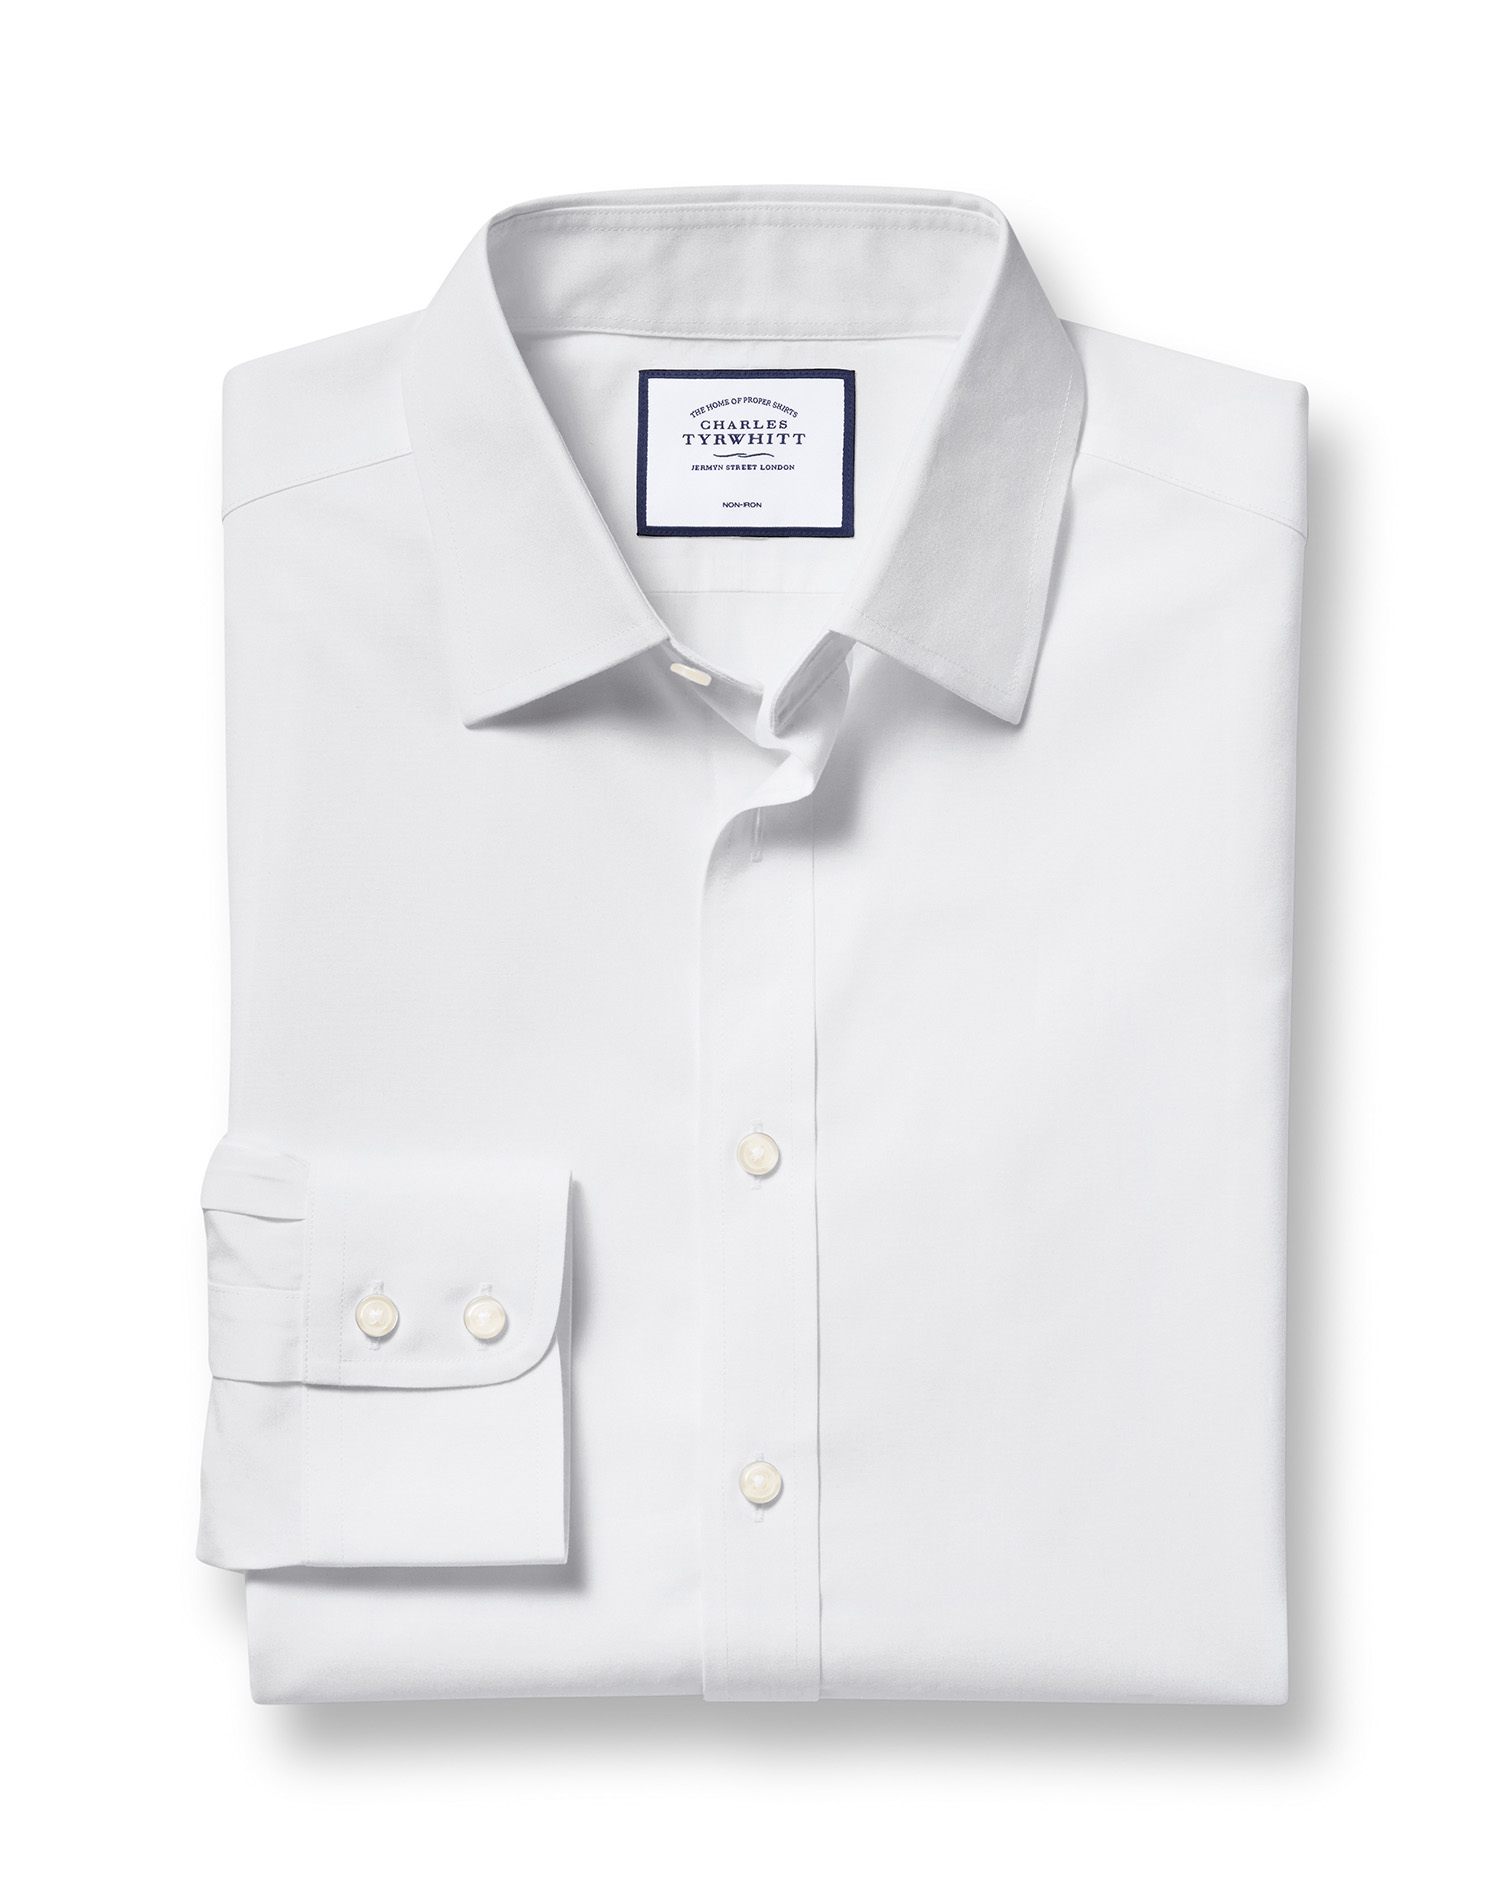 Slim Fit Non-Iron Poplin White Cotton Formal Shirt Single Cuff Size 16.5/38 by Charles Tyrwhitt